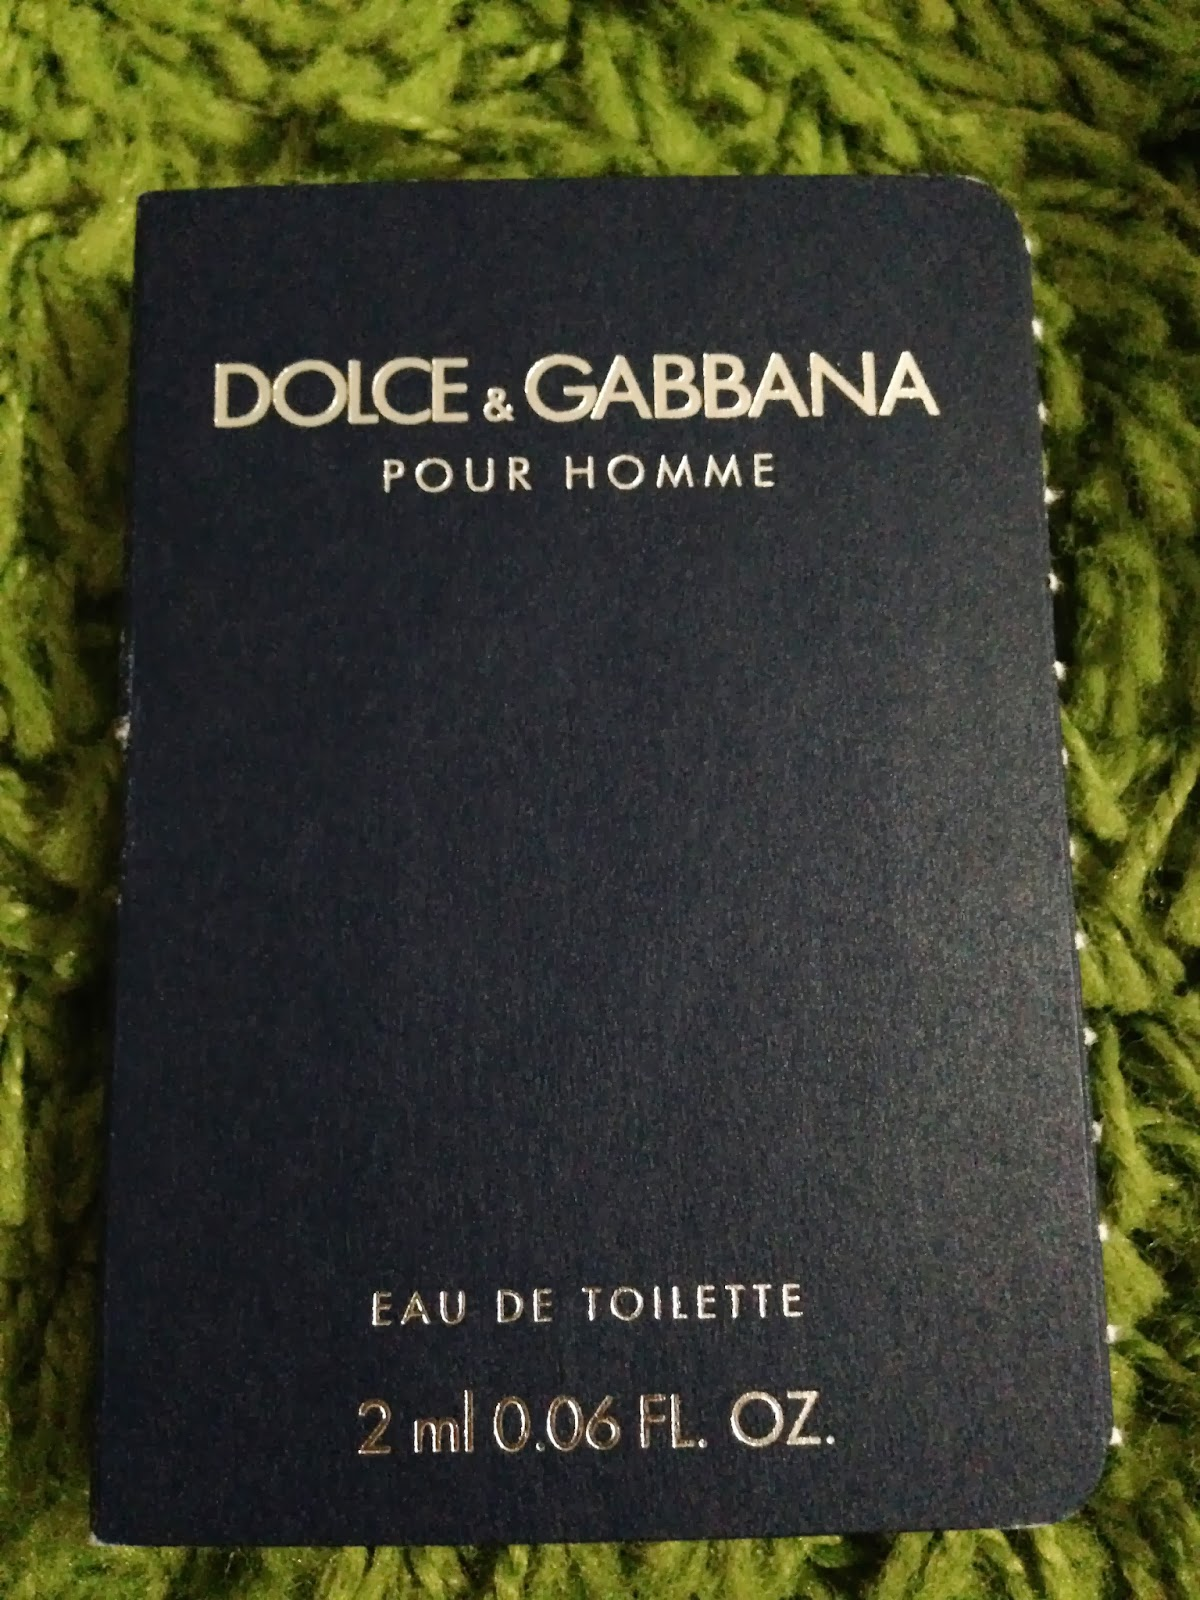 Dolce   Gabbana Pour Homme reedition is of aromatic, dry and floral  character and opens with notes of tangerine, bergamot and neroli. a064d48ec5a4